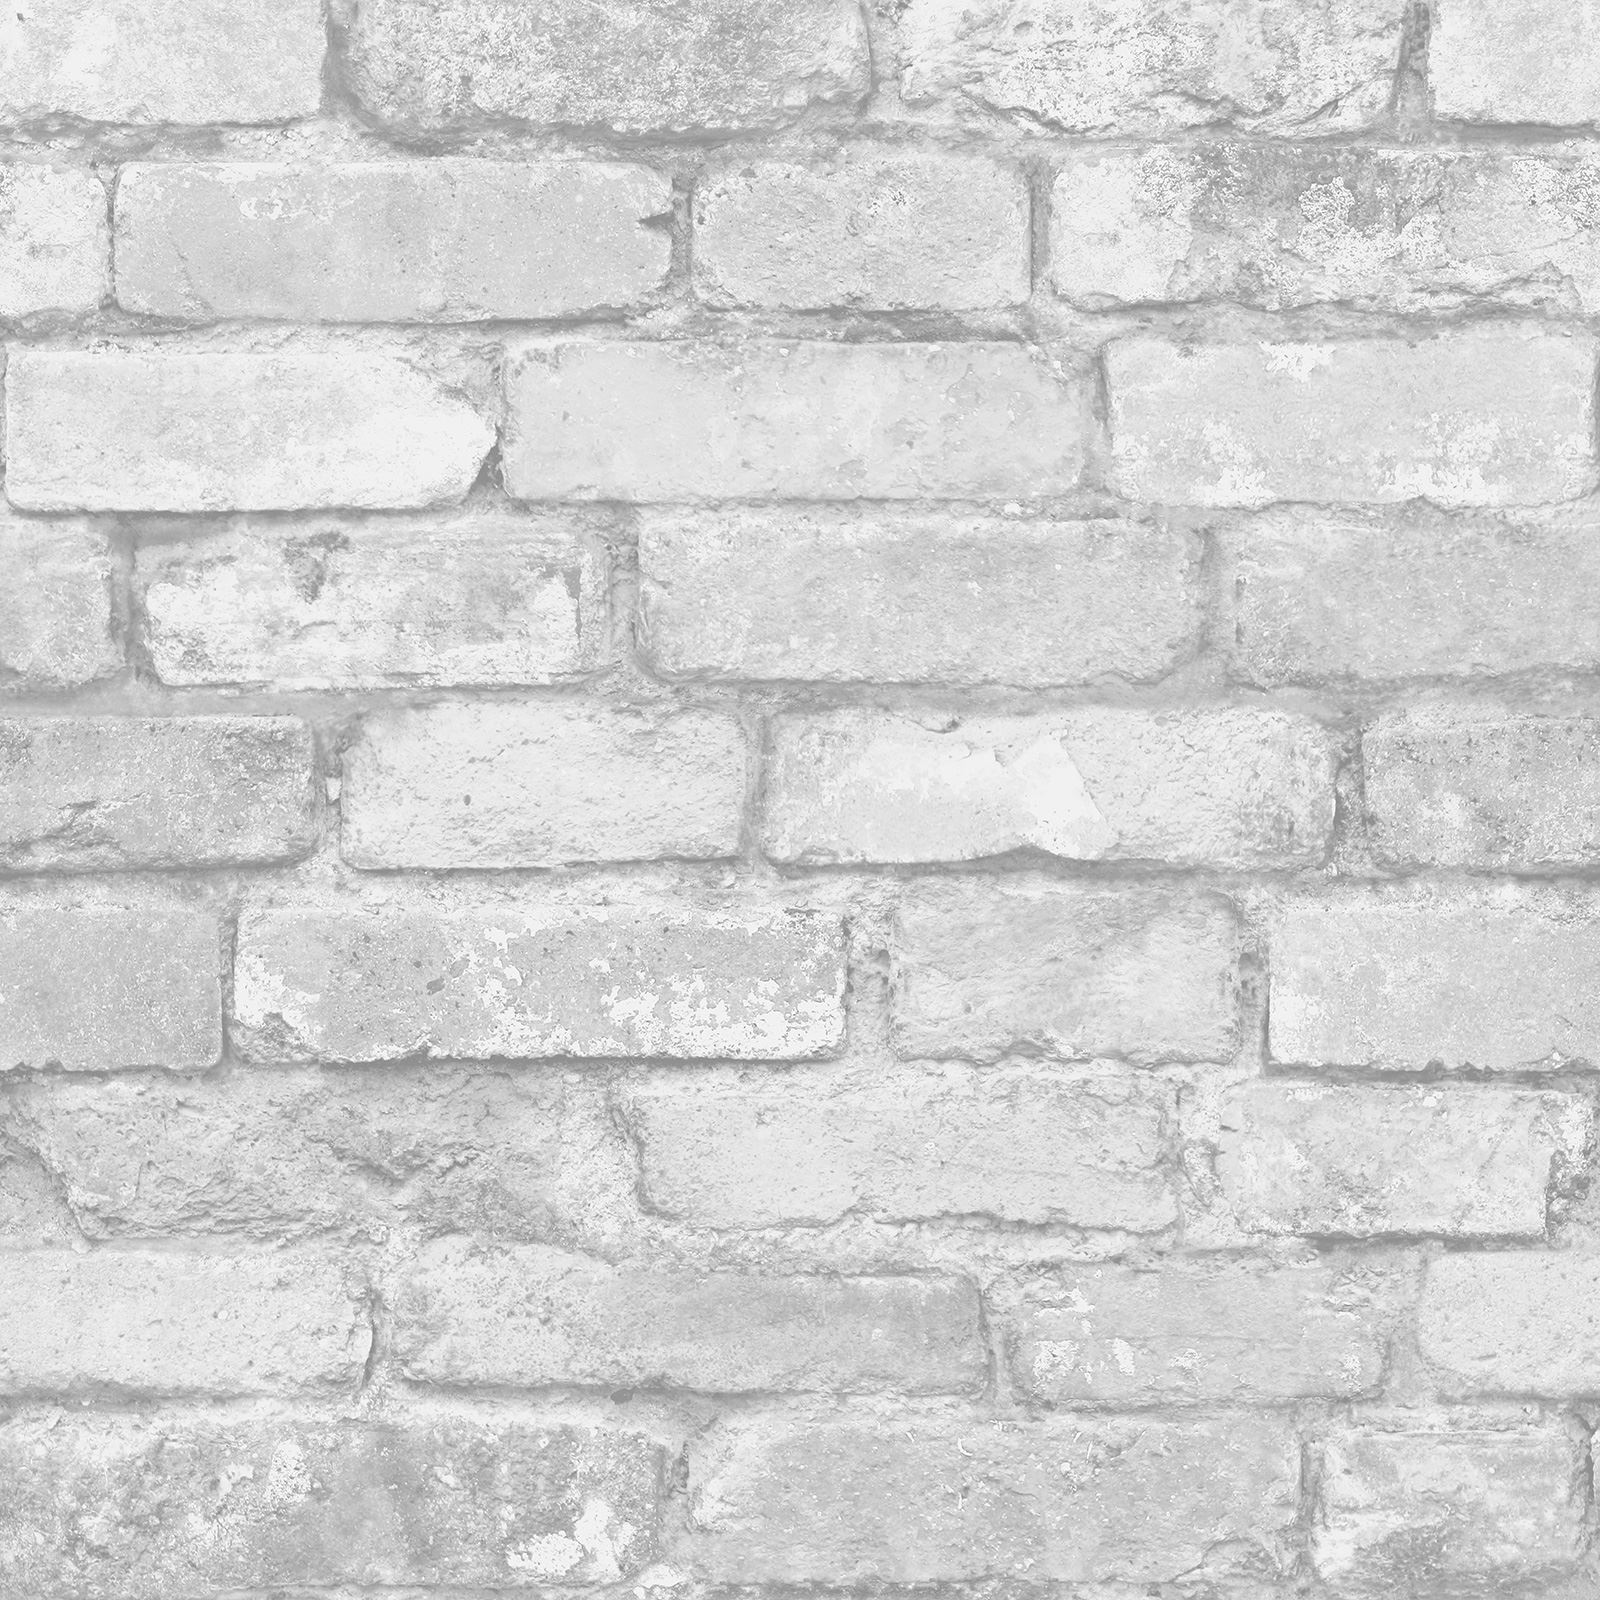 WHITE BRIcK EFFEcT WALLPAPER - 5 STYLES - FEATURE WALL - NEW eBay